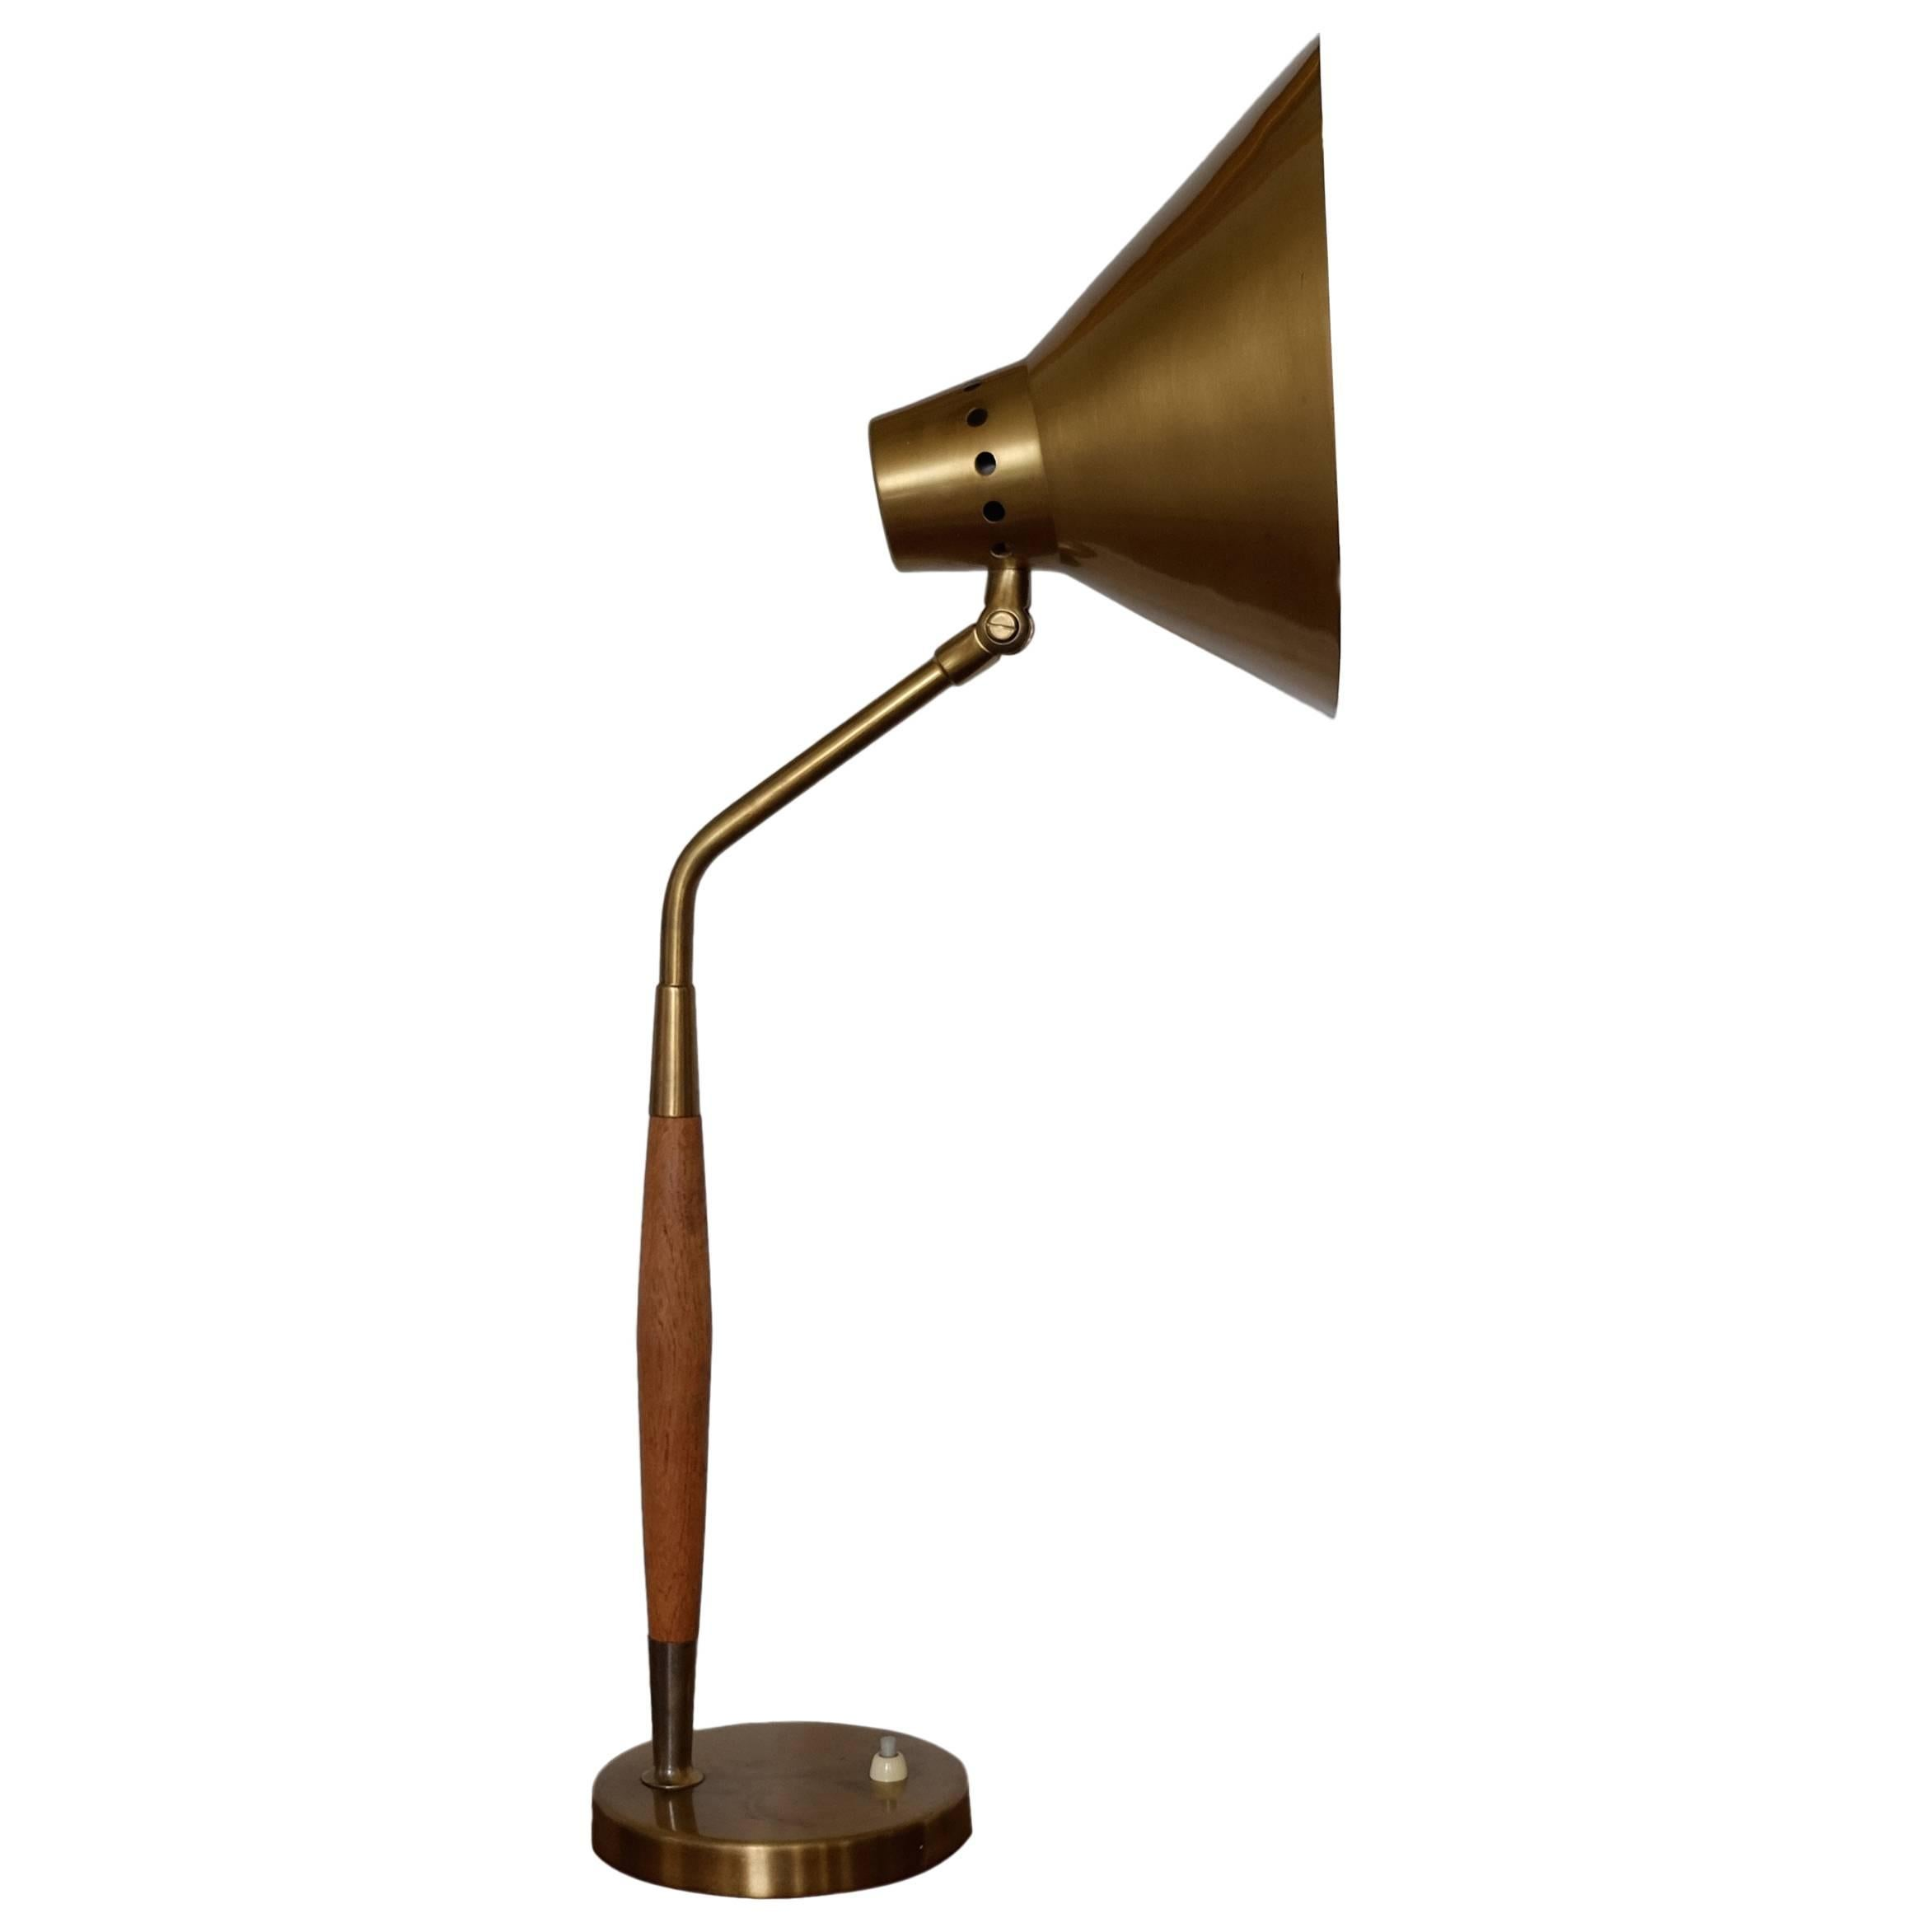 Swedish Table Lamp in Teak and Brass by Boréns, 1950s